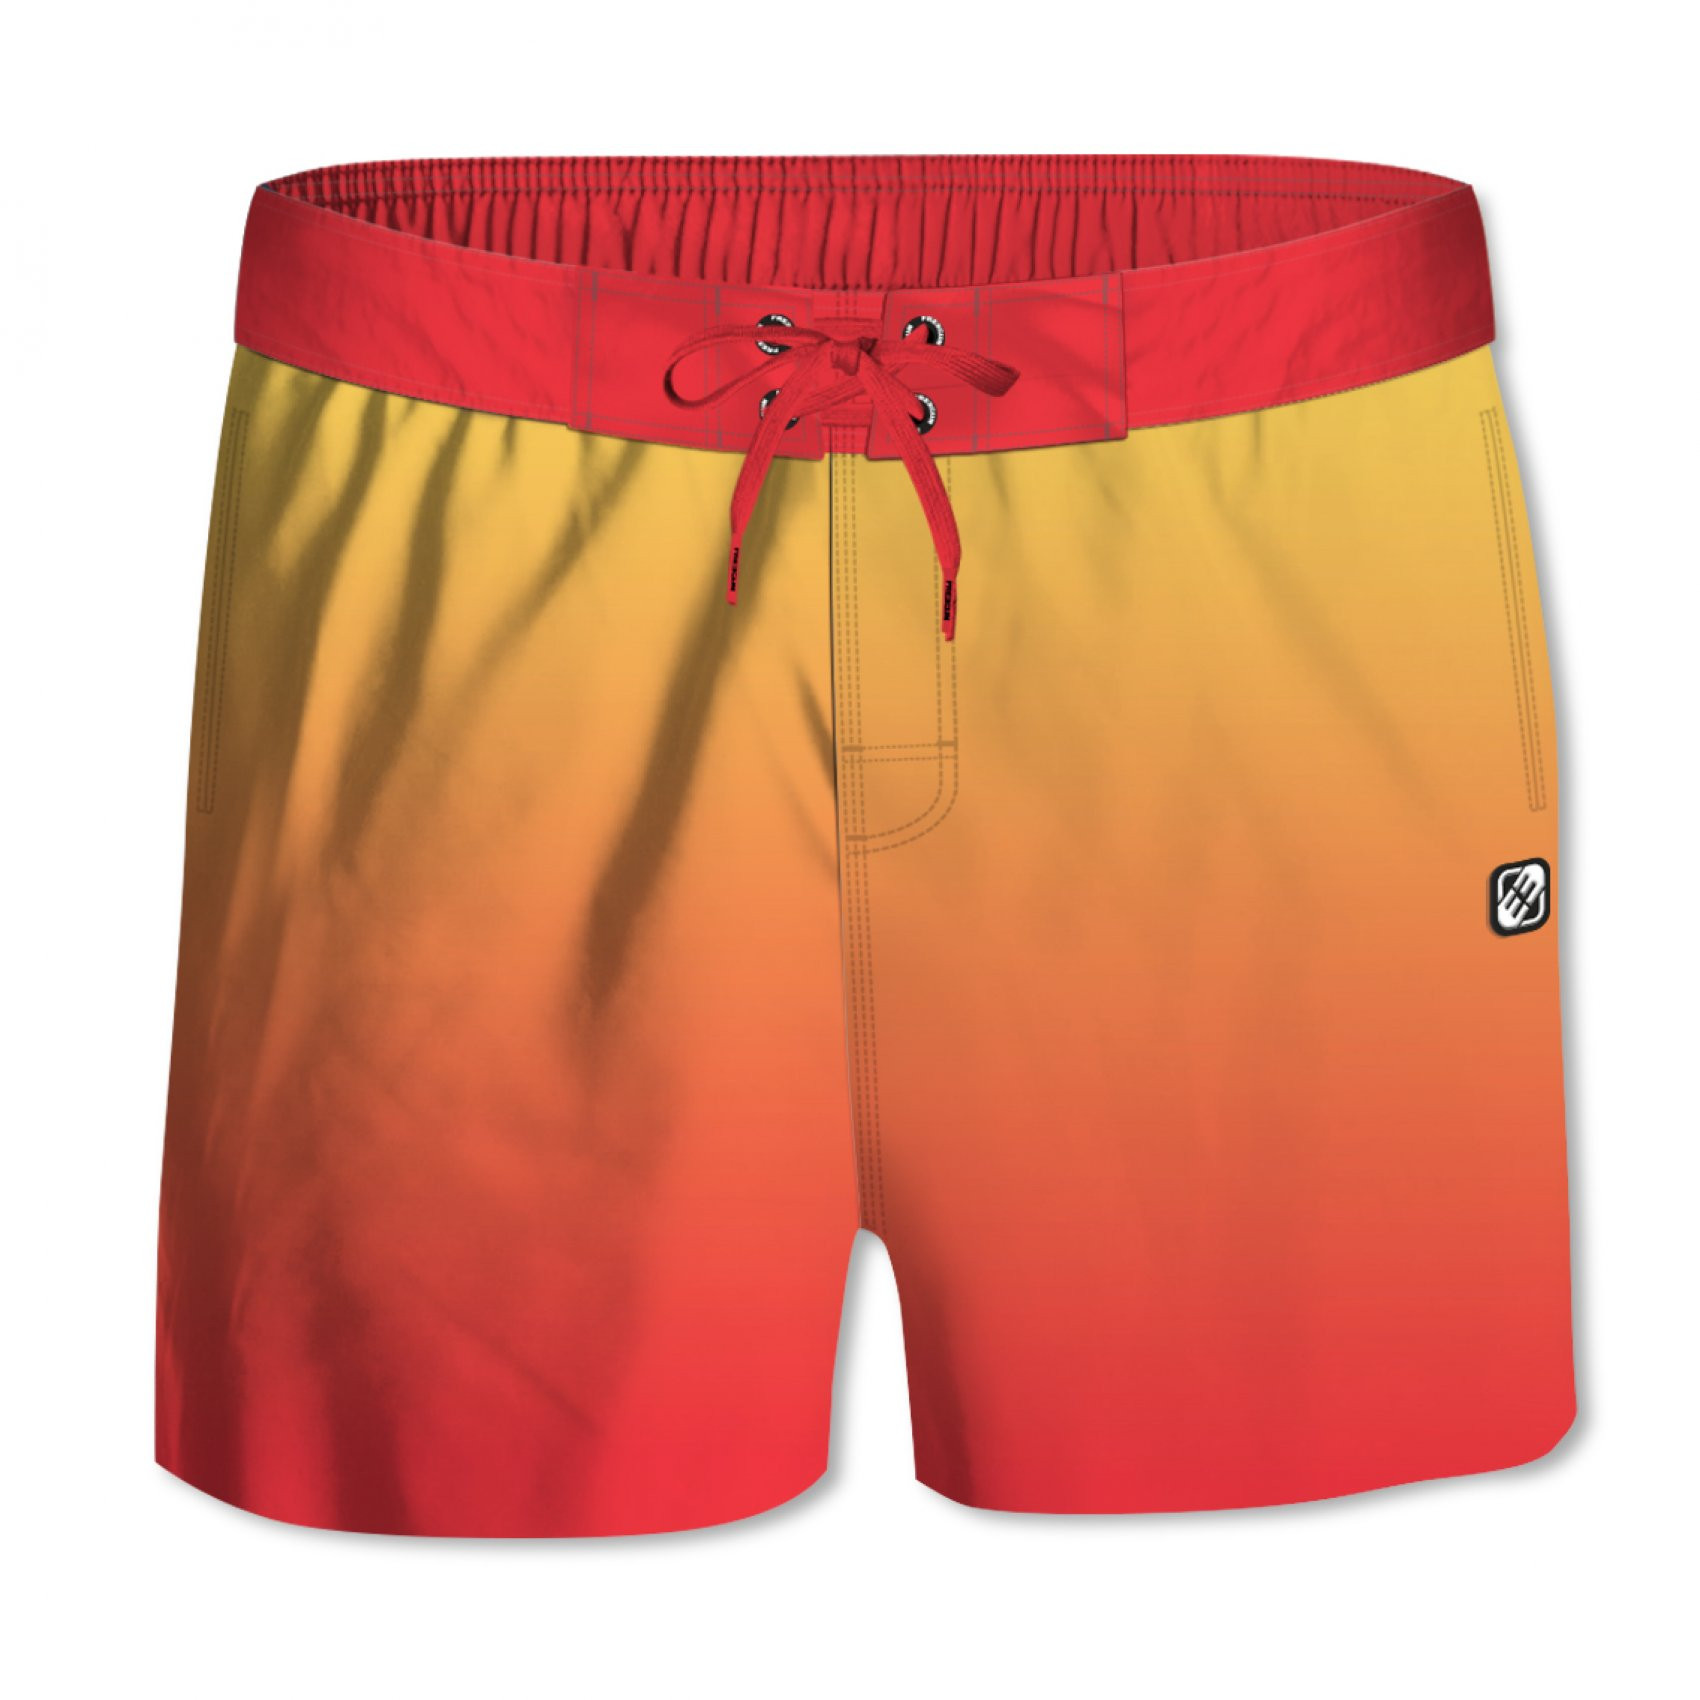 Boardshort garçon dégradé rouge (photo)